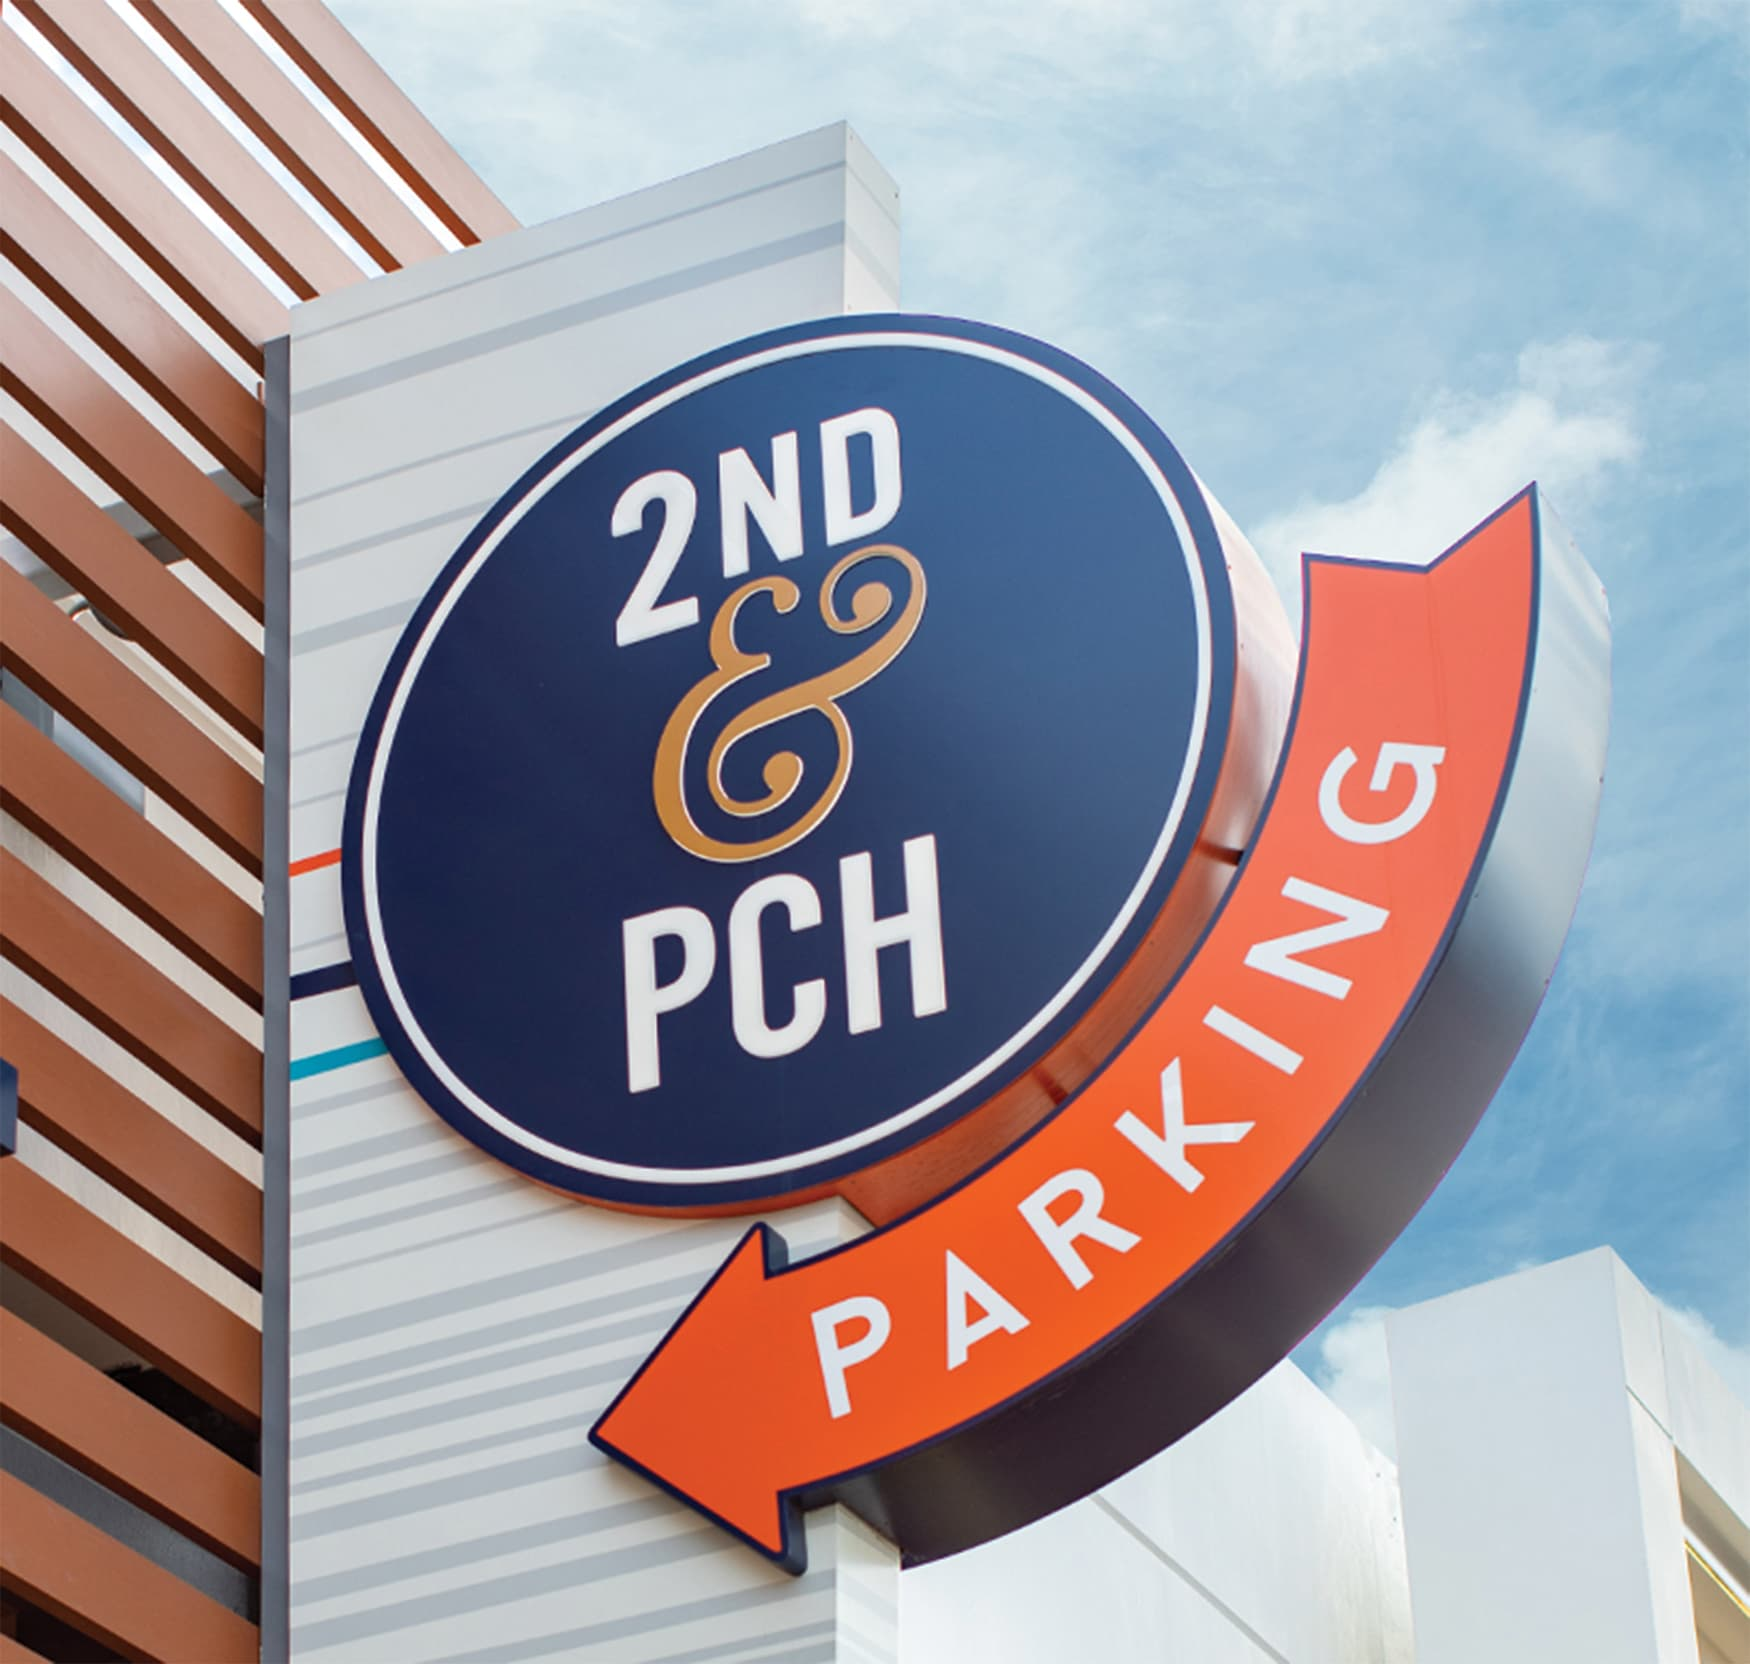 2nd & PCH parking directional sign